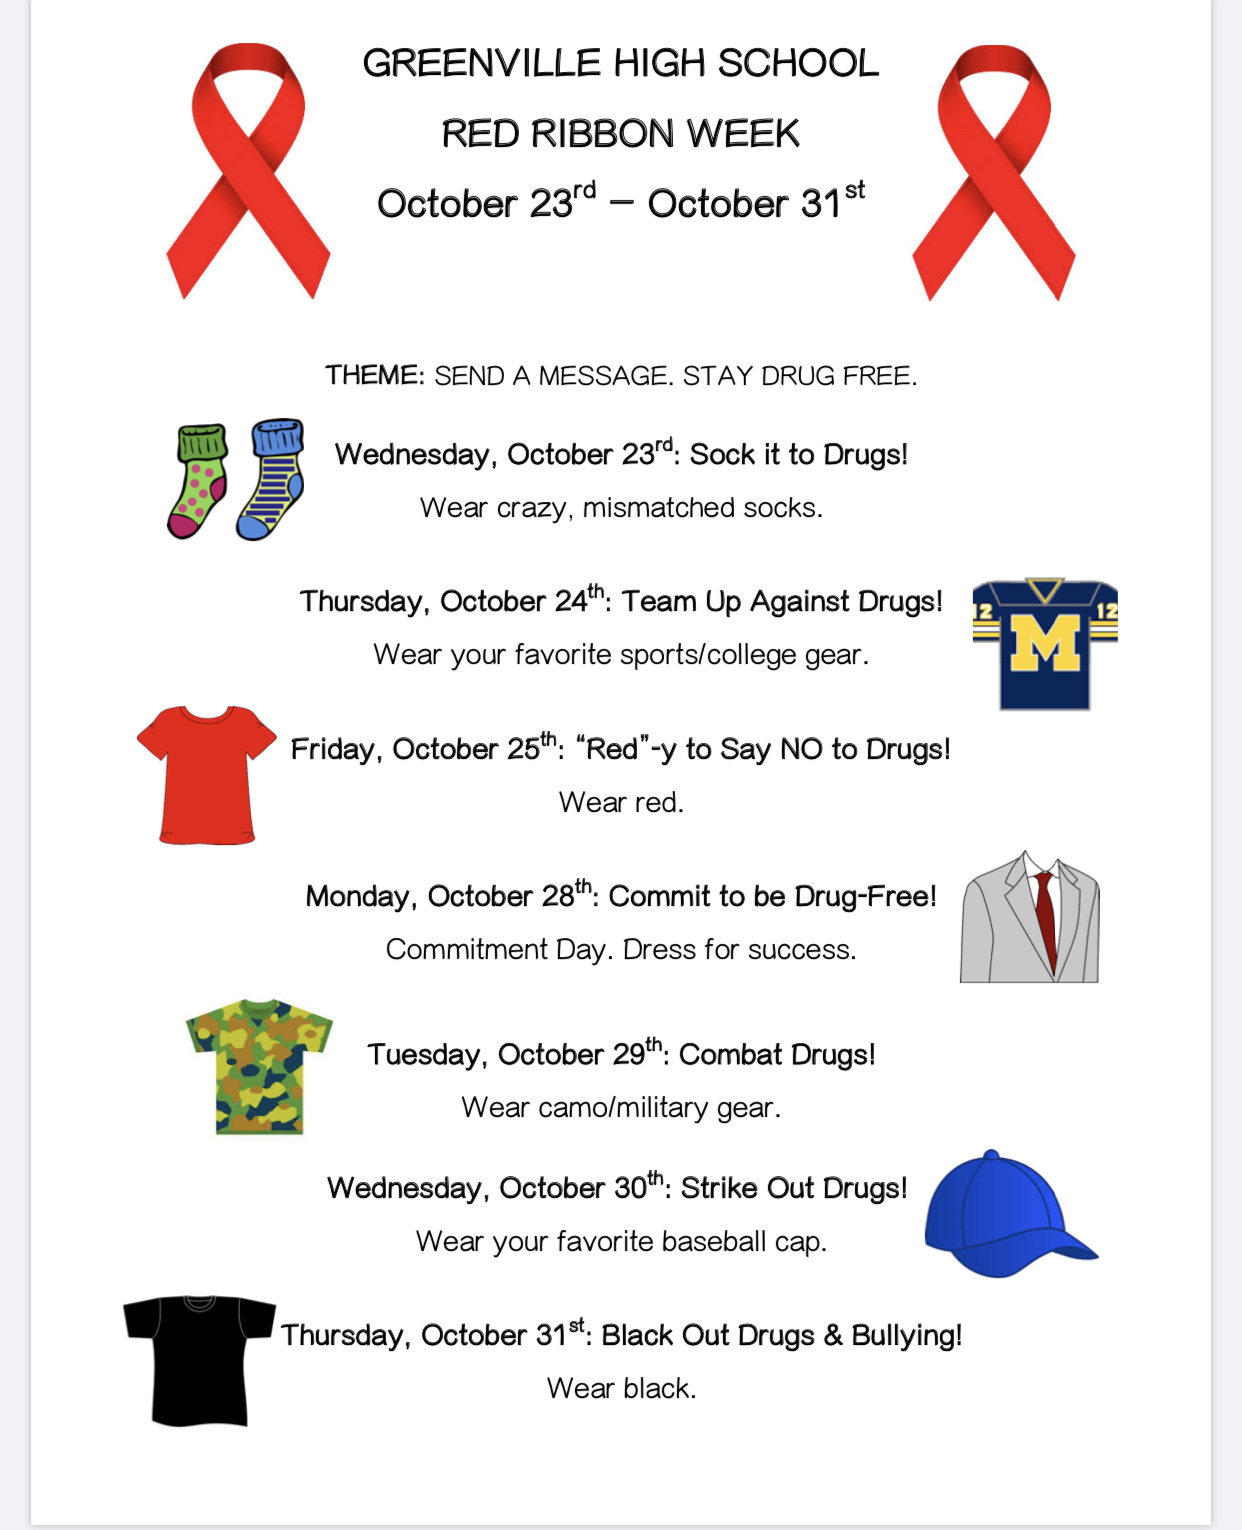 Red Ribbon Week Greenville High School